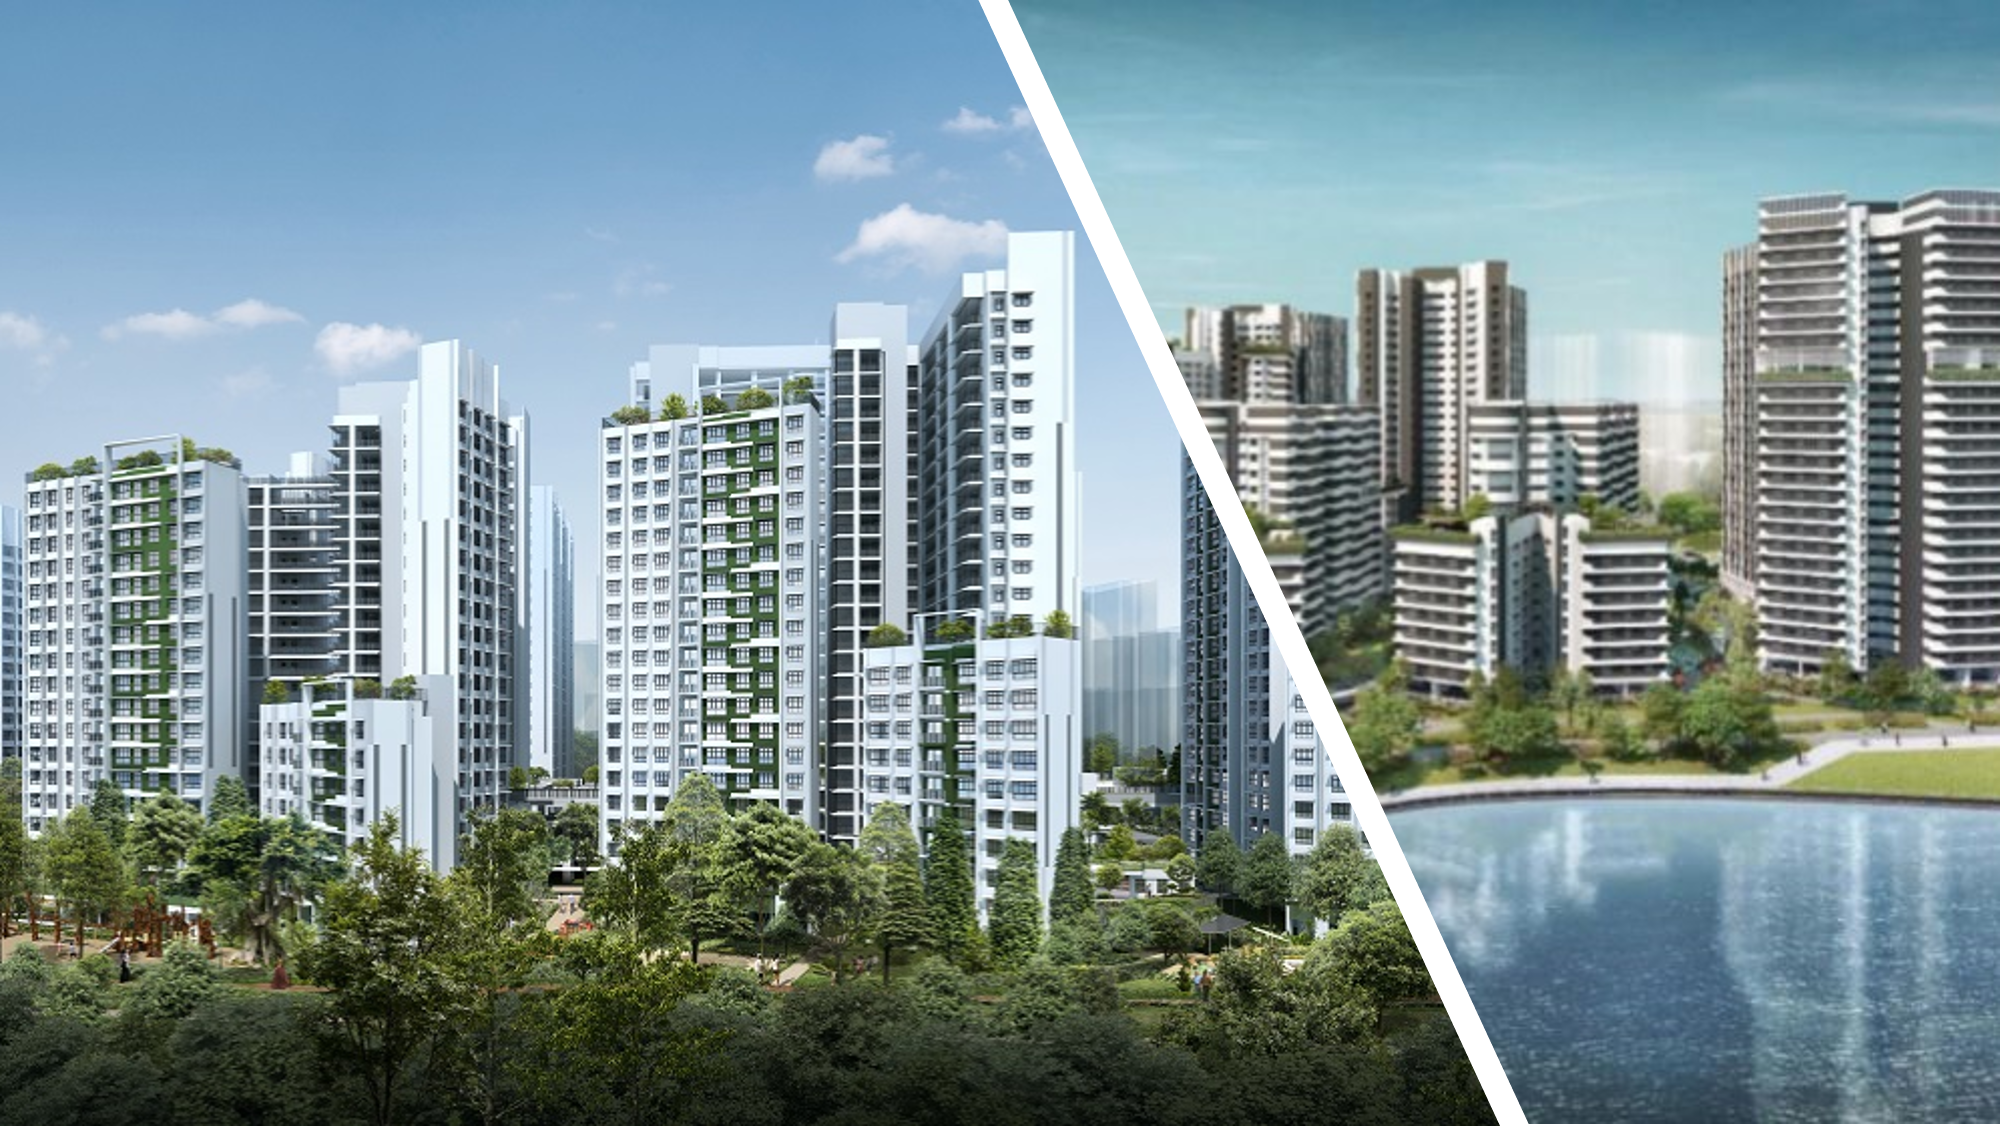 More details on Punggol's BTO in September 2019 launch